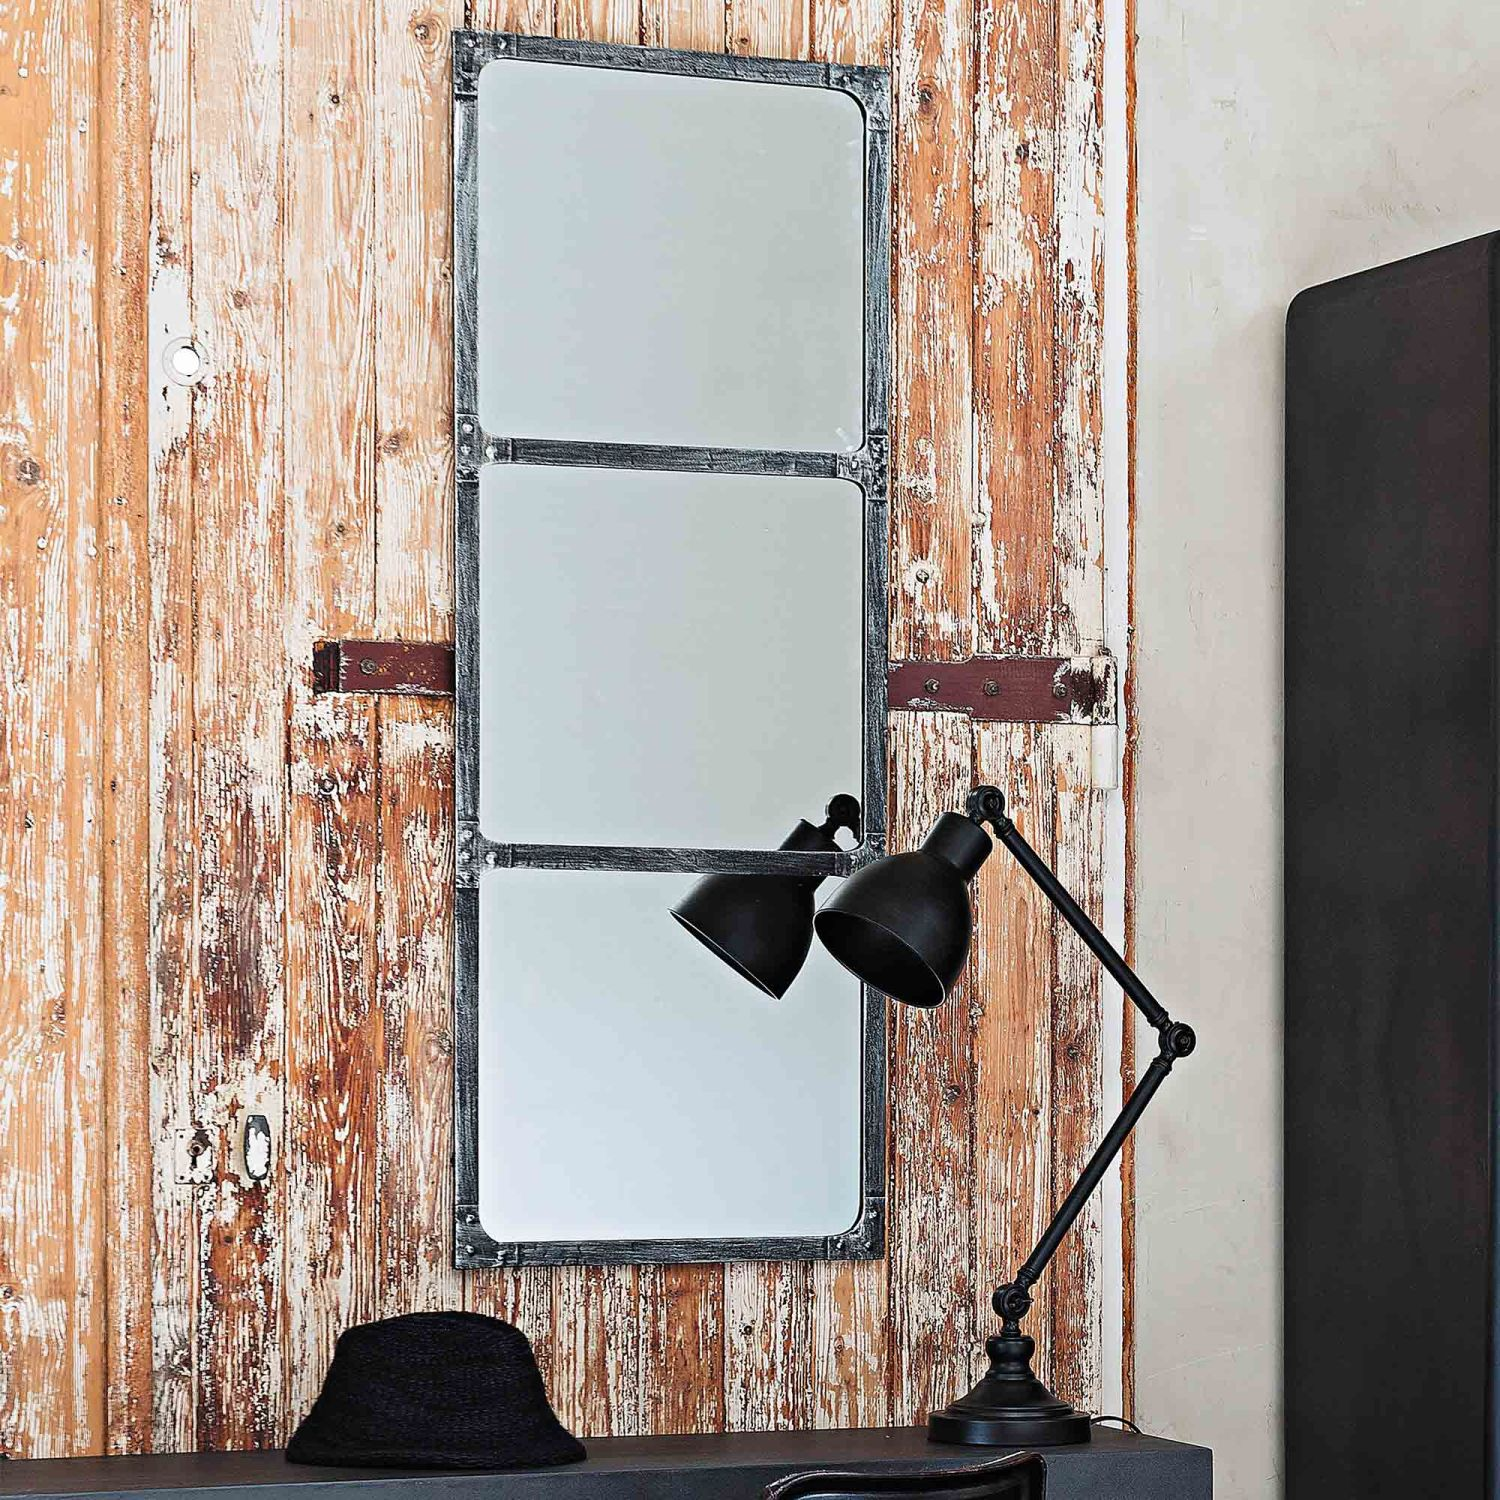 miroir en m tal effet rouille h 120 cm maisons du monde. Black Bedroom Furniture Sets. Home Design Ideas